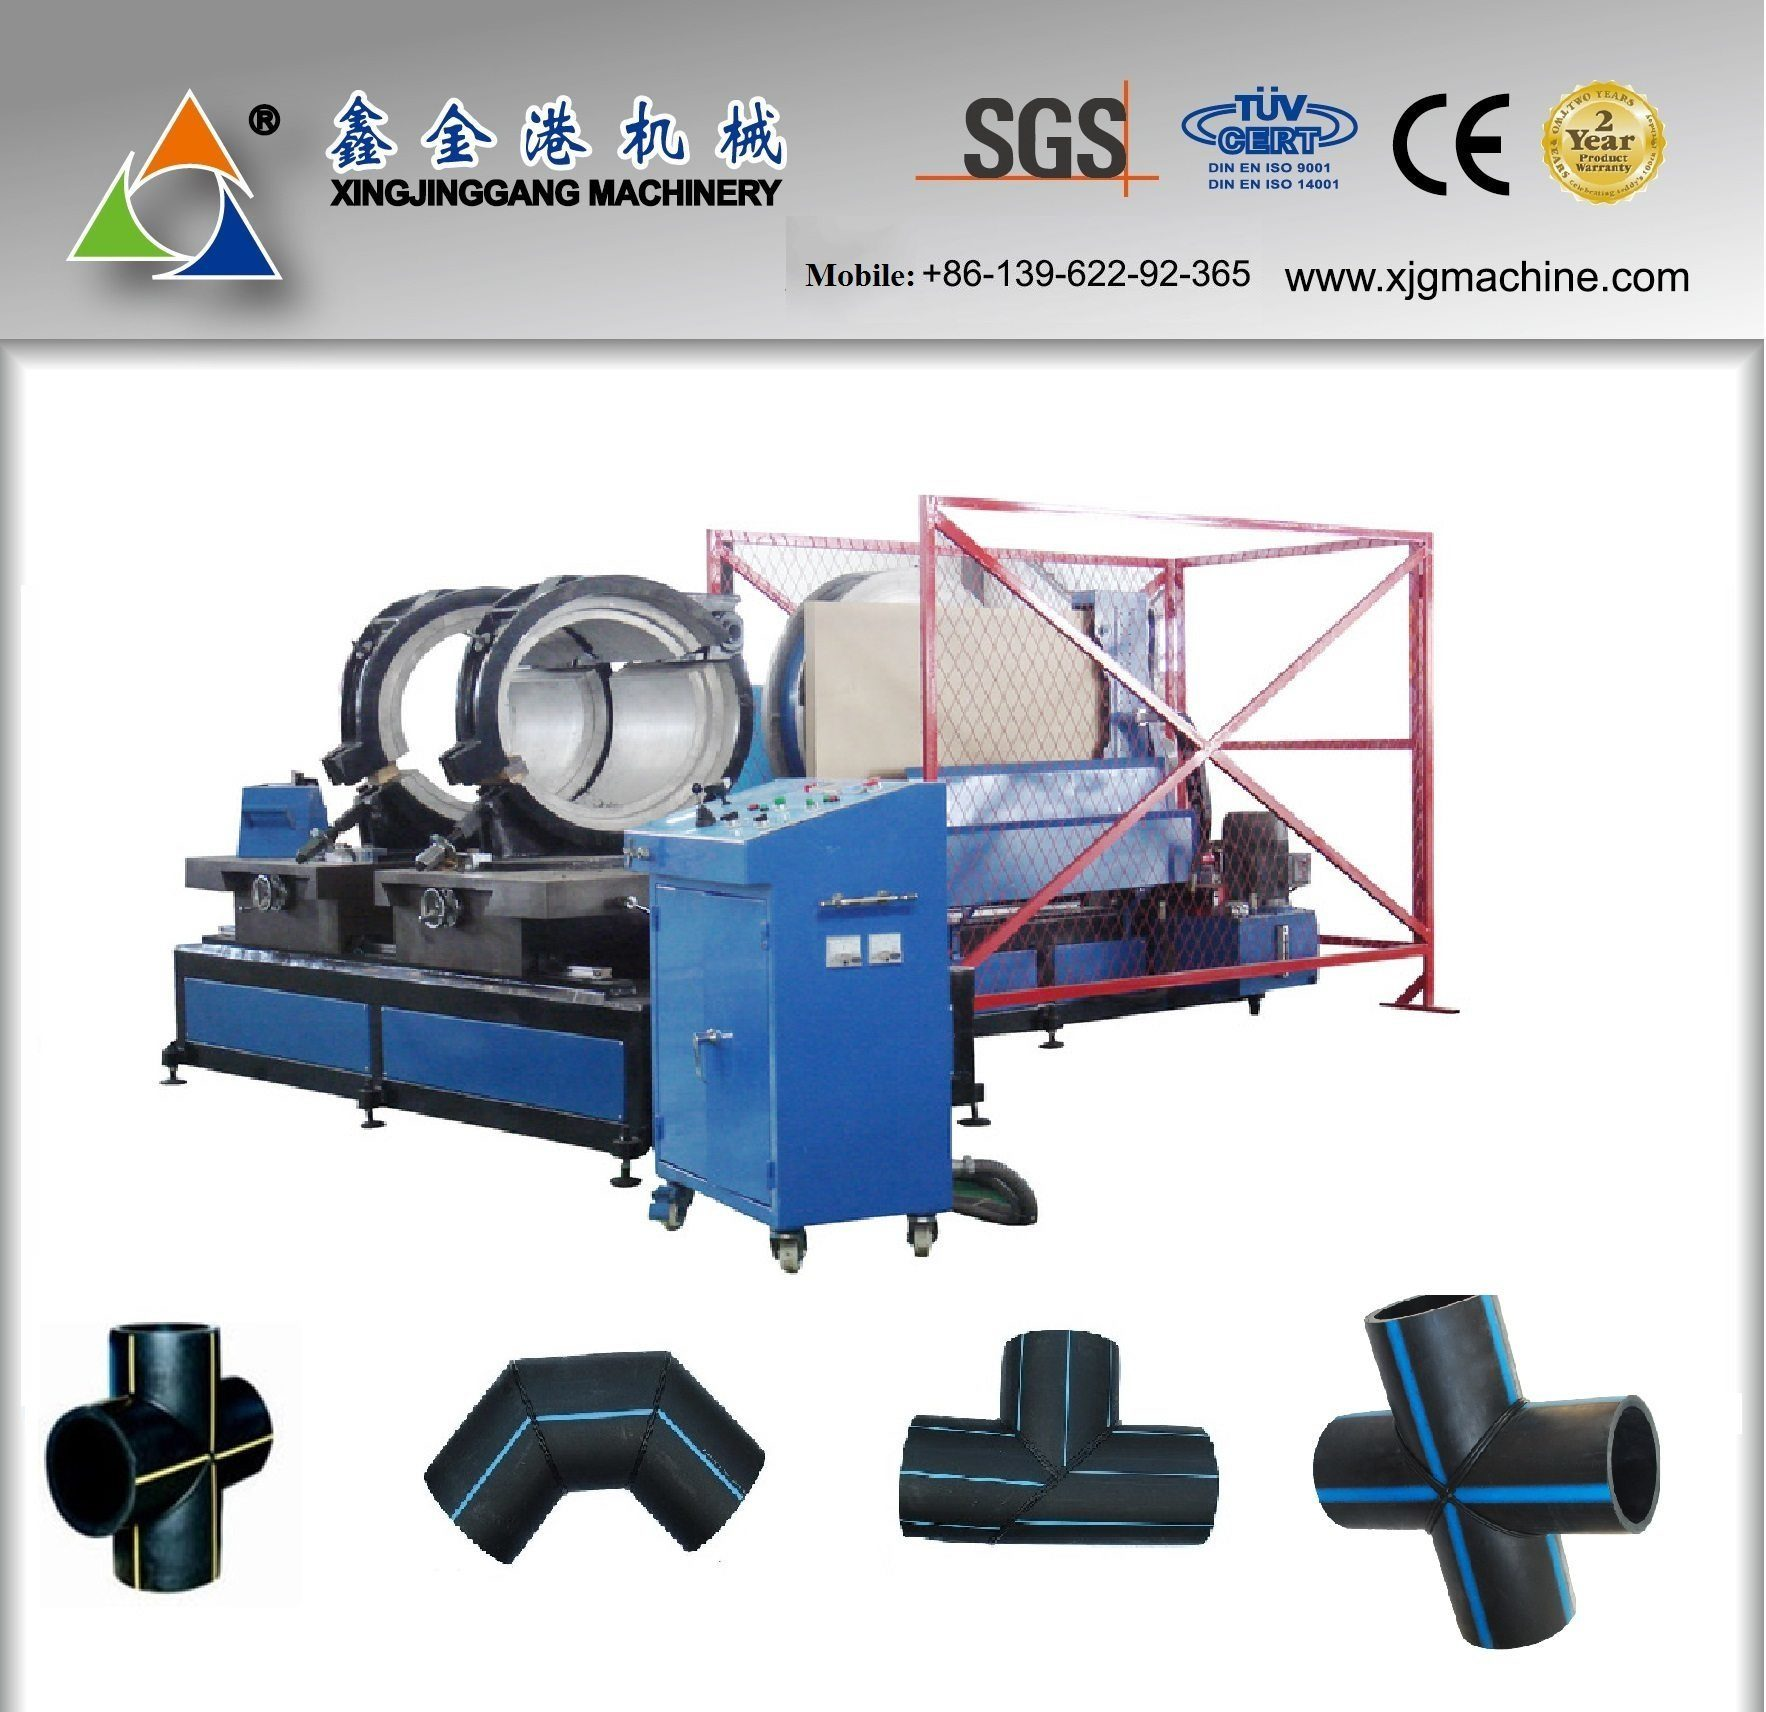 HDPE Pipe Fitting Jointing Machine